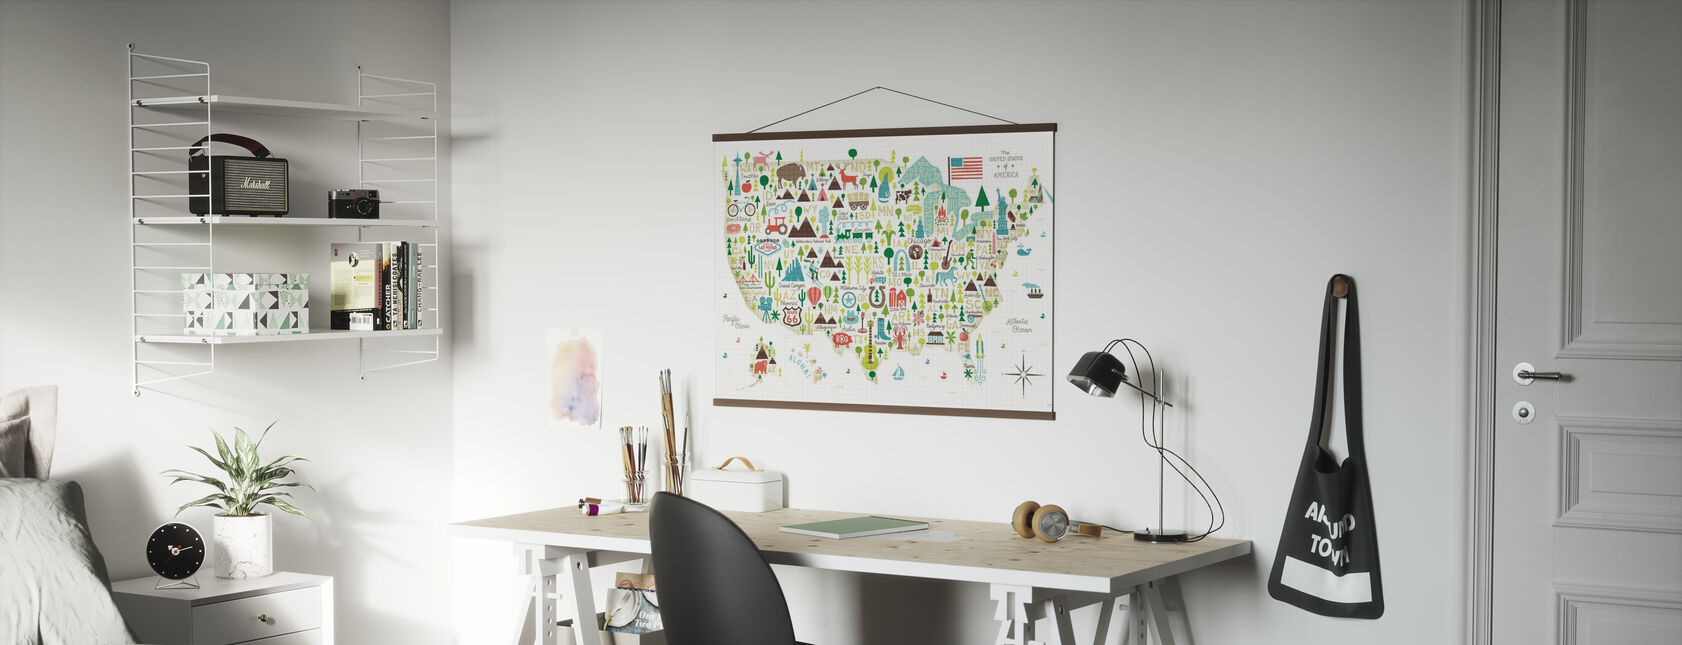 Illustrated USA - Poster - Office